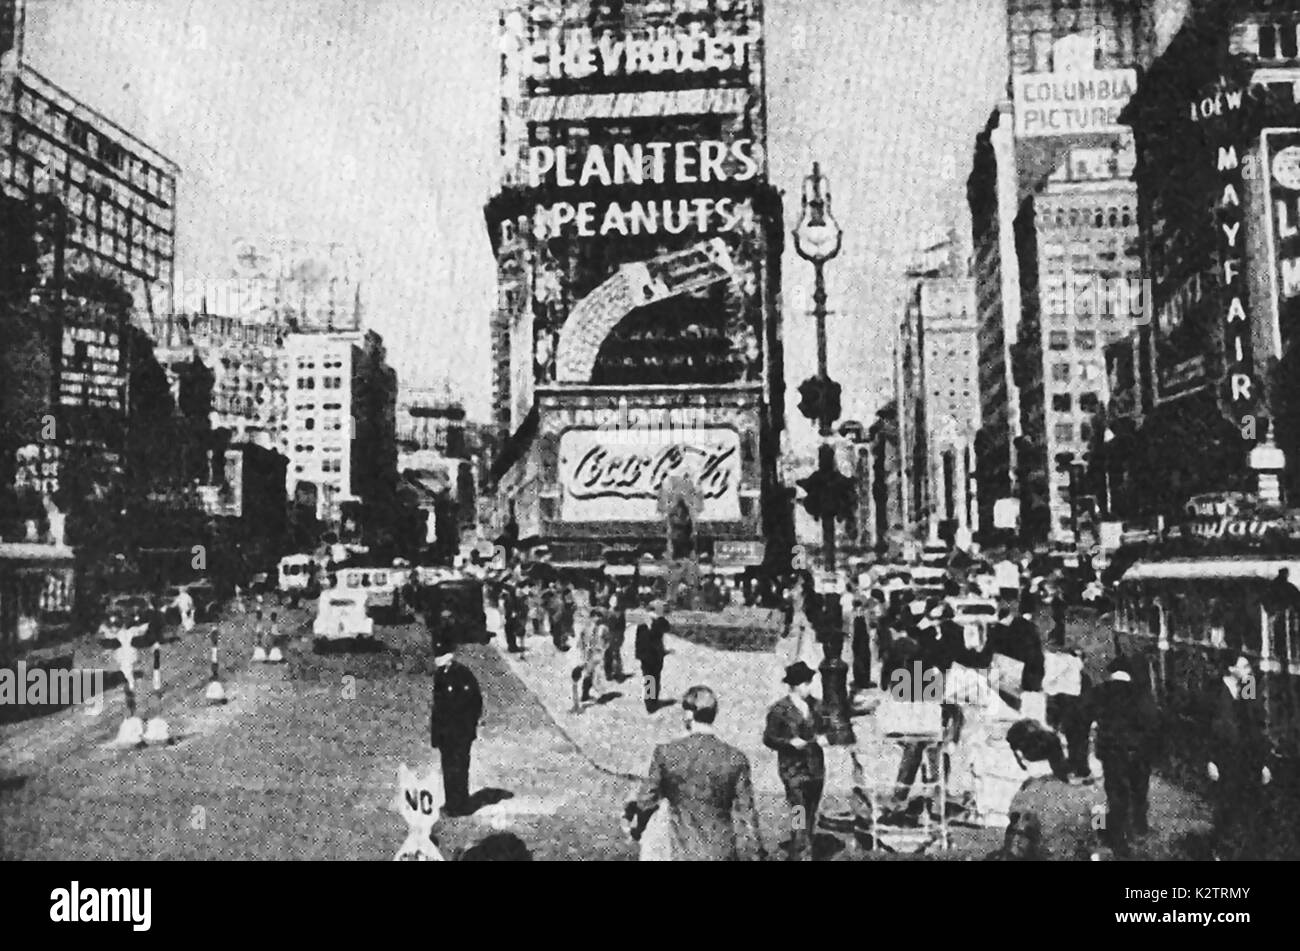 Broadway, New York,USA (from a 1940's magazine) showing neon advertising  and other signs for Chevrolet, Planter's peanuts,Coca Cola, Columbia Pictures and Mayfair - Stock Image